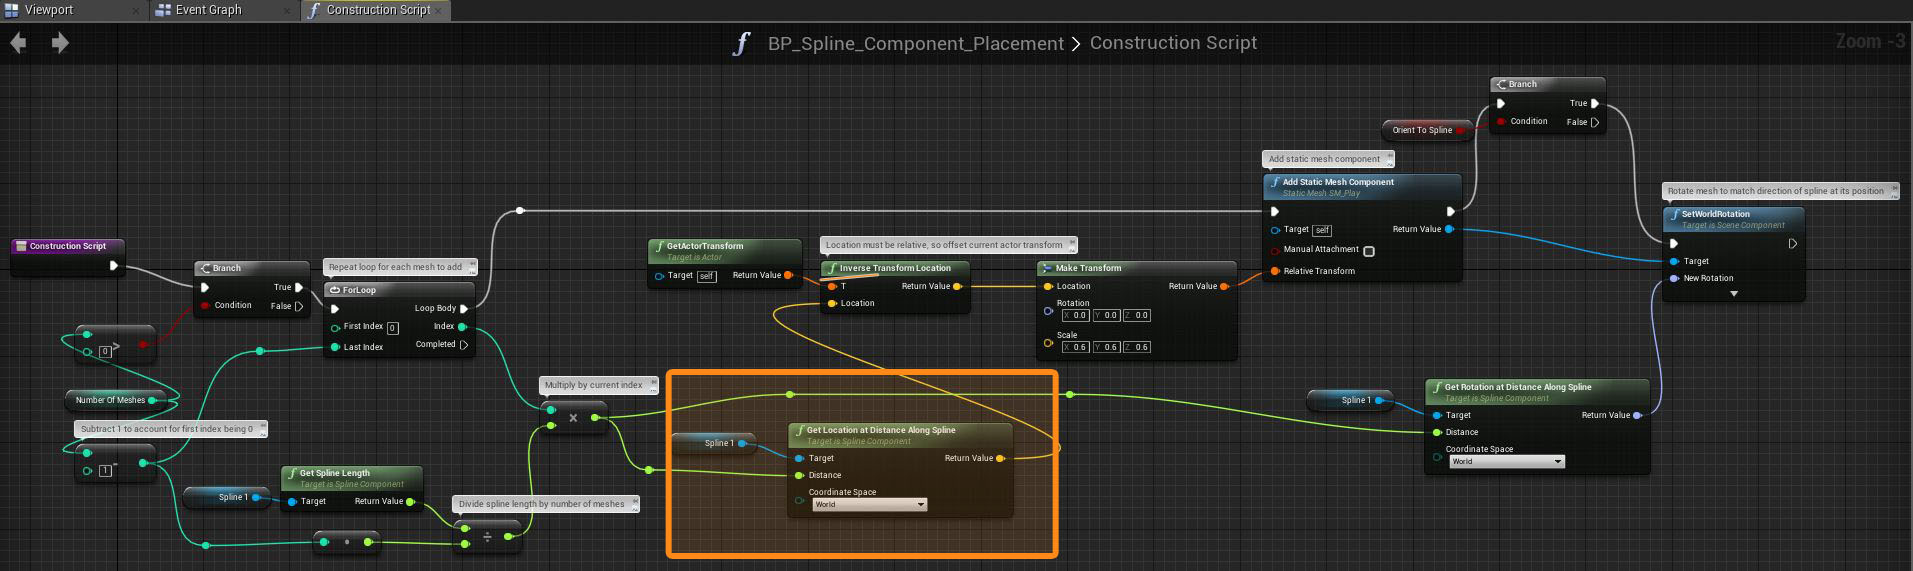 Studying spline components in unreal engine 4 example 12 screenshot 2 example 12 screenshot 3 malvernweather Choice Image